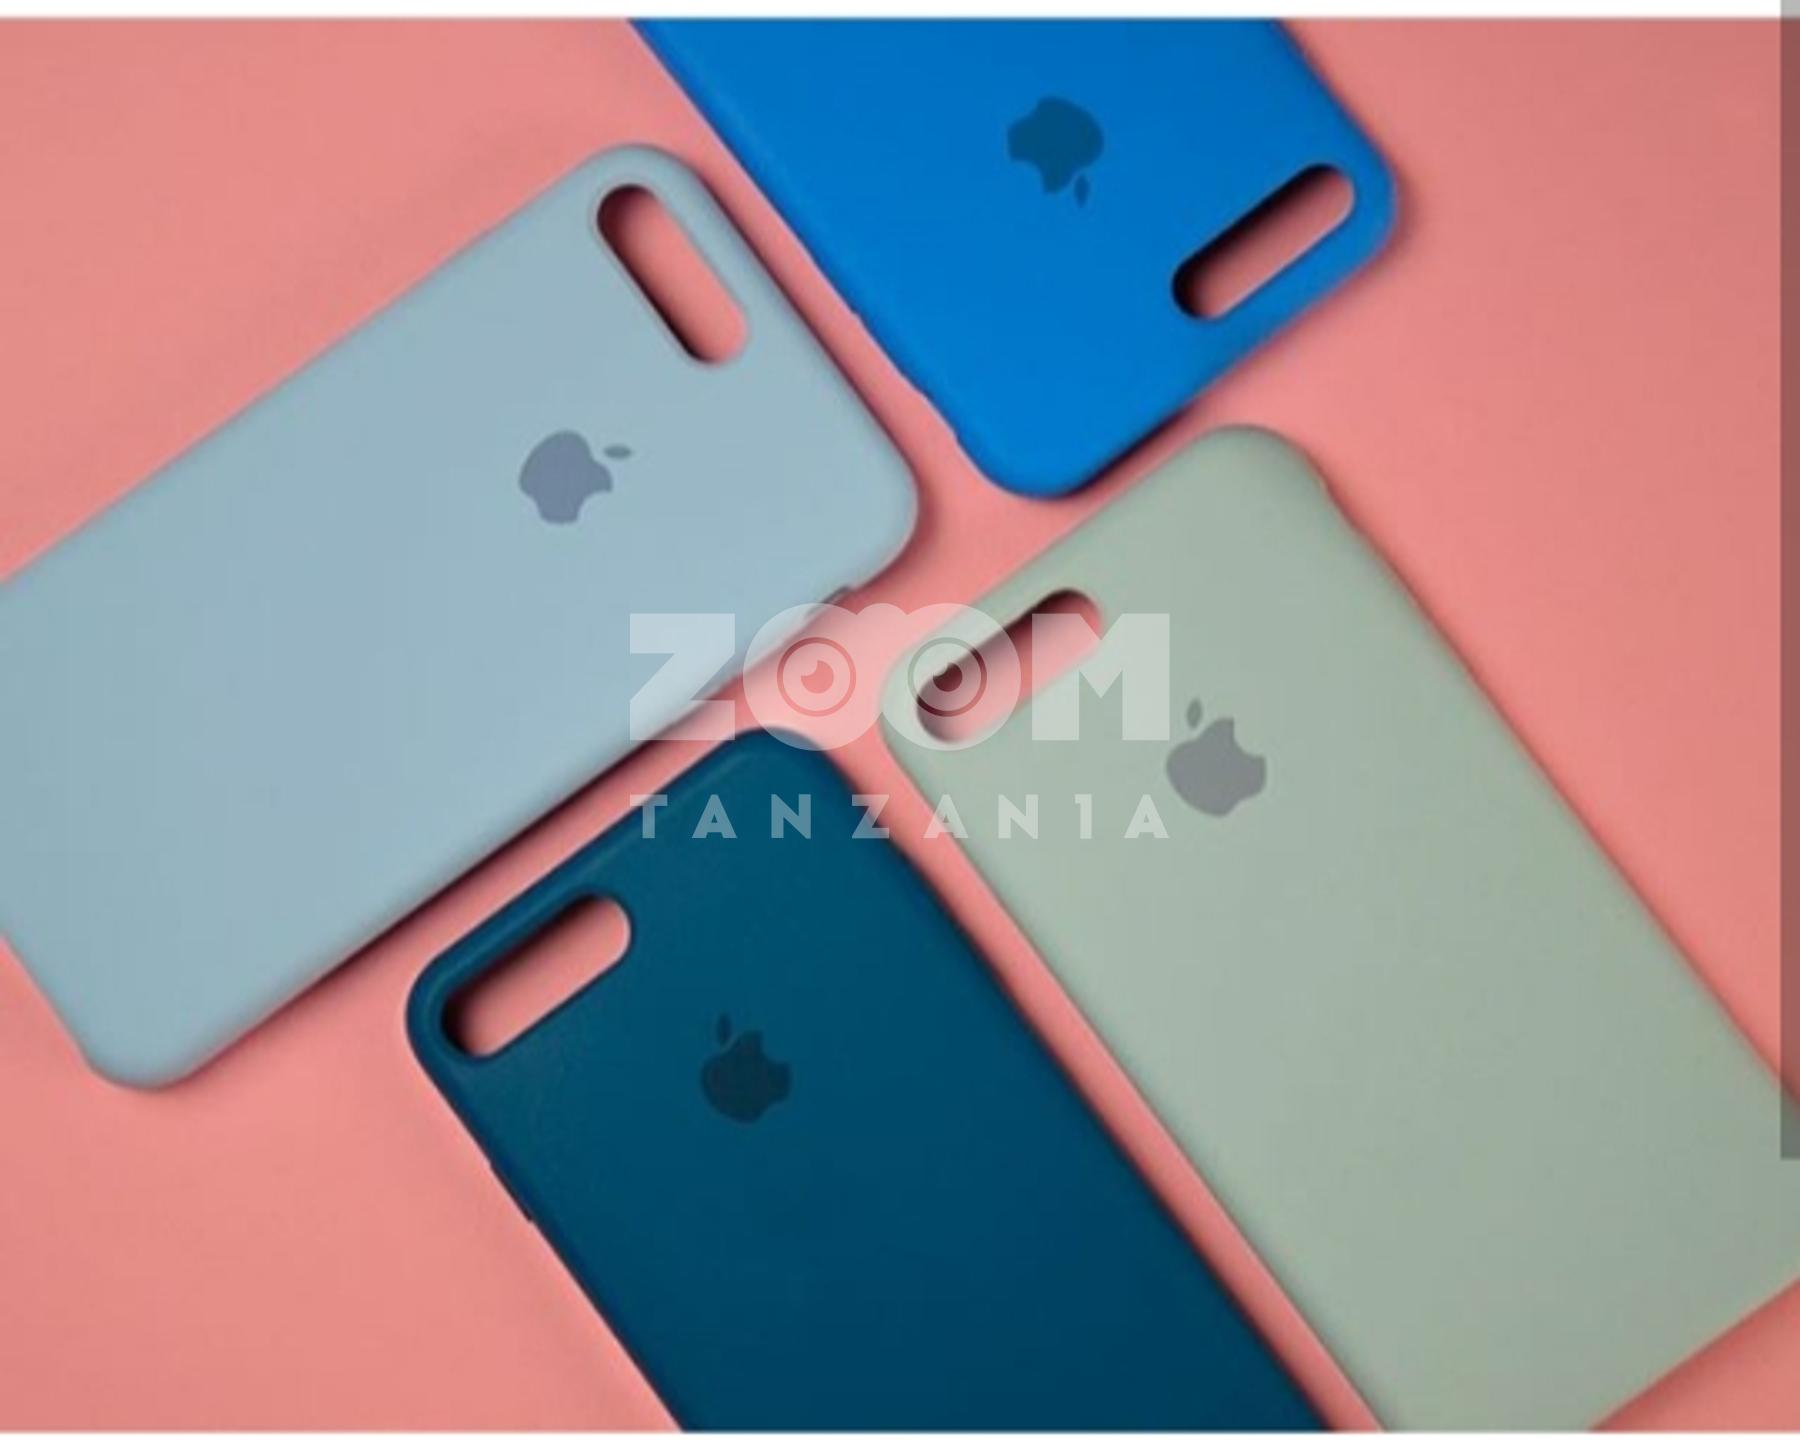 Iphone 7 cover green in Dar Es Salaam  ZoomTanzania